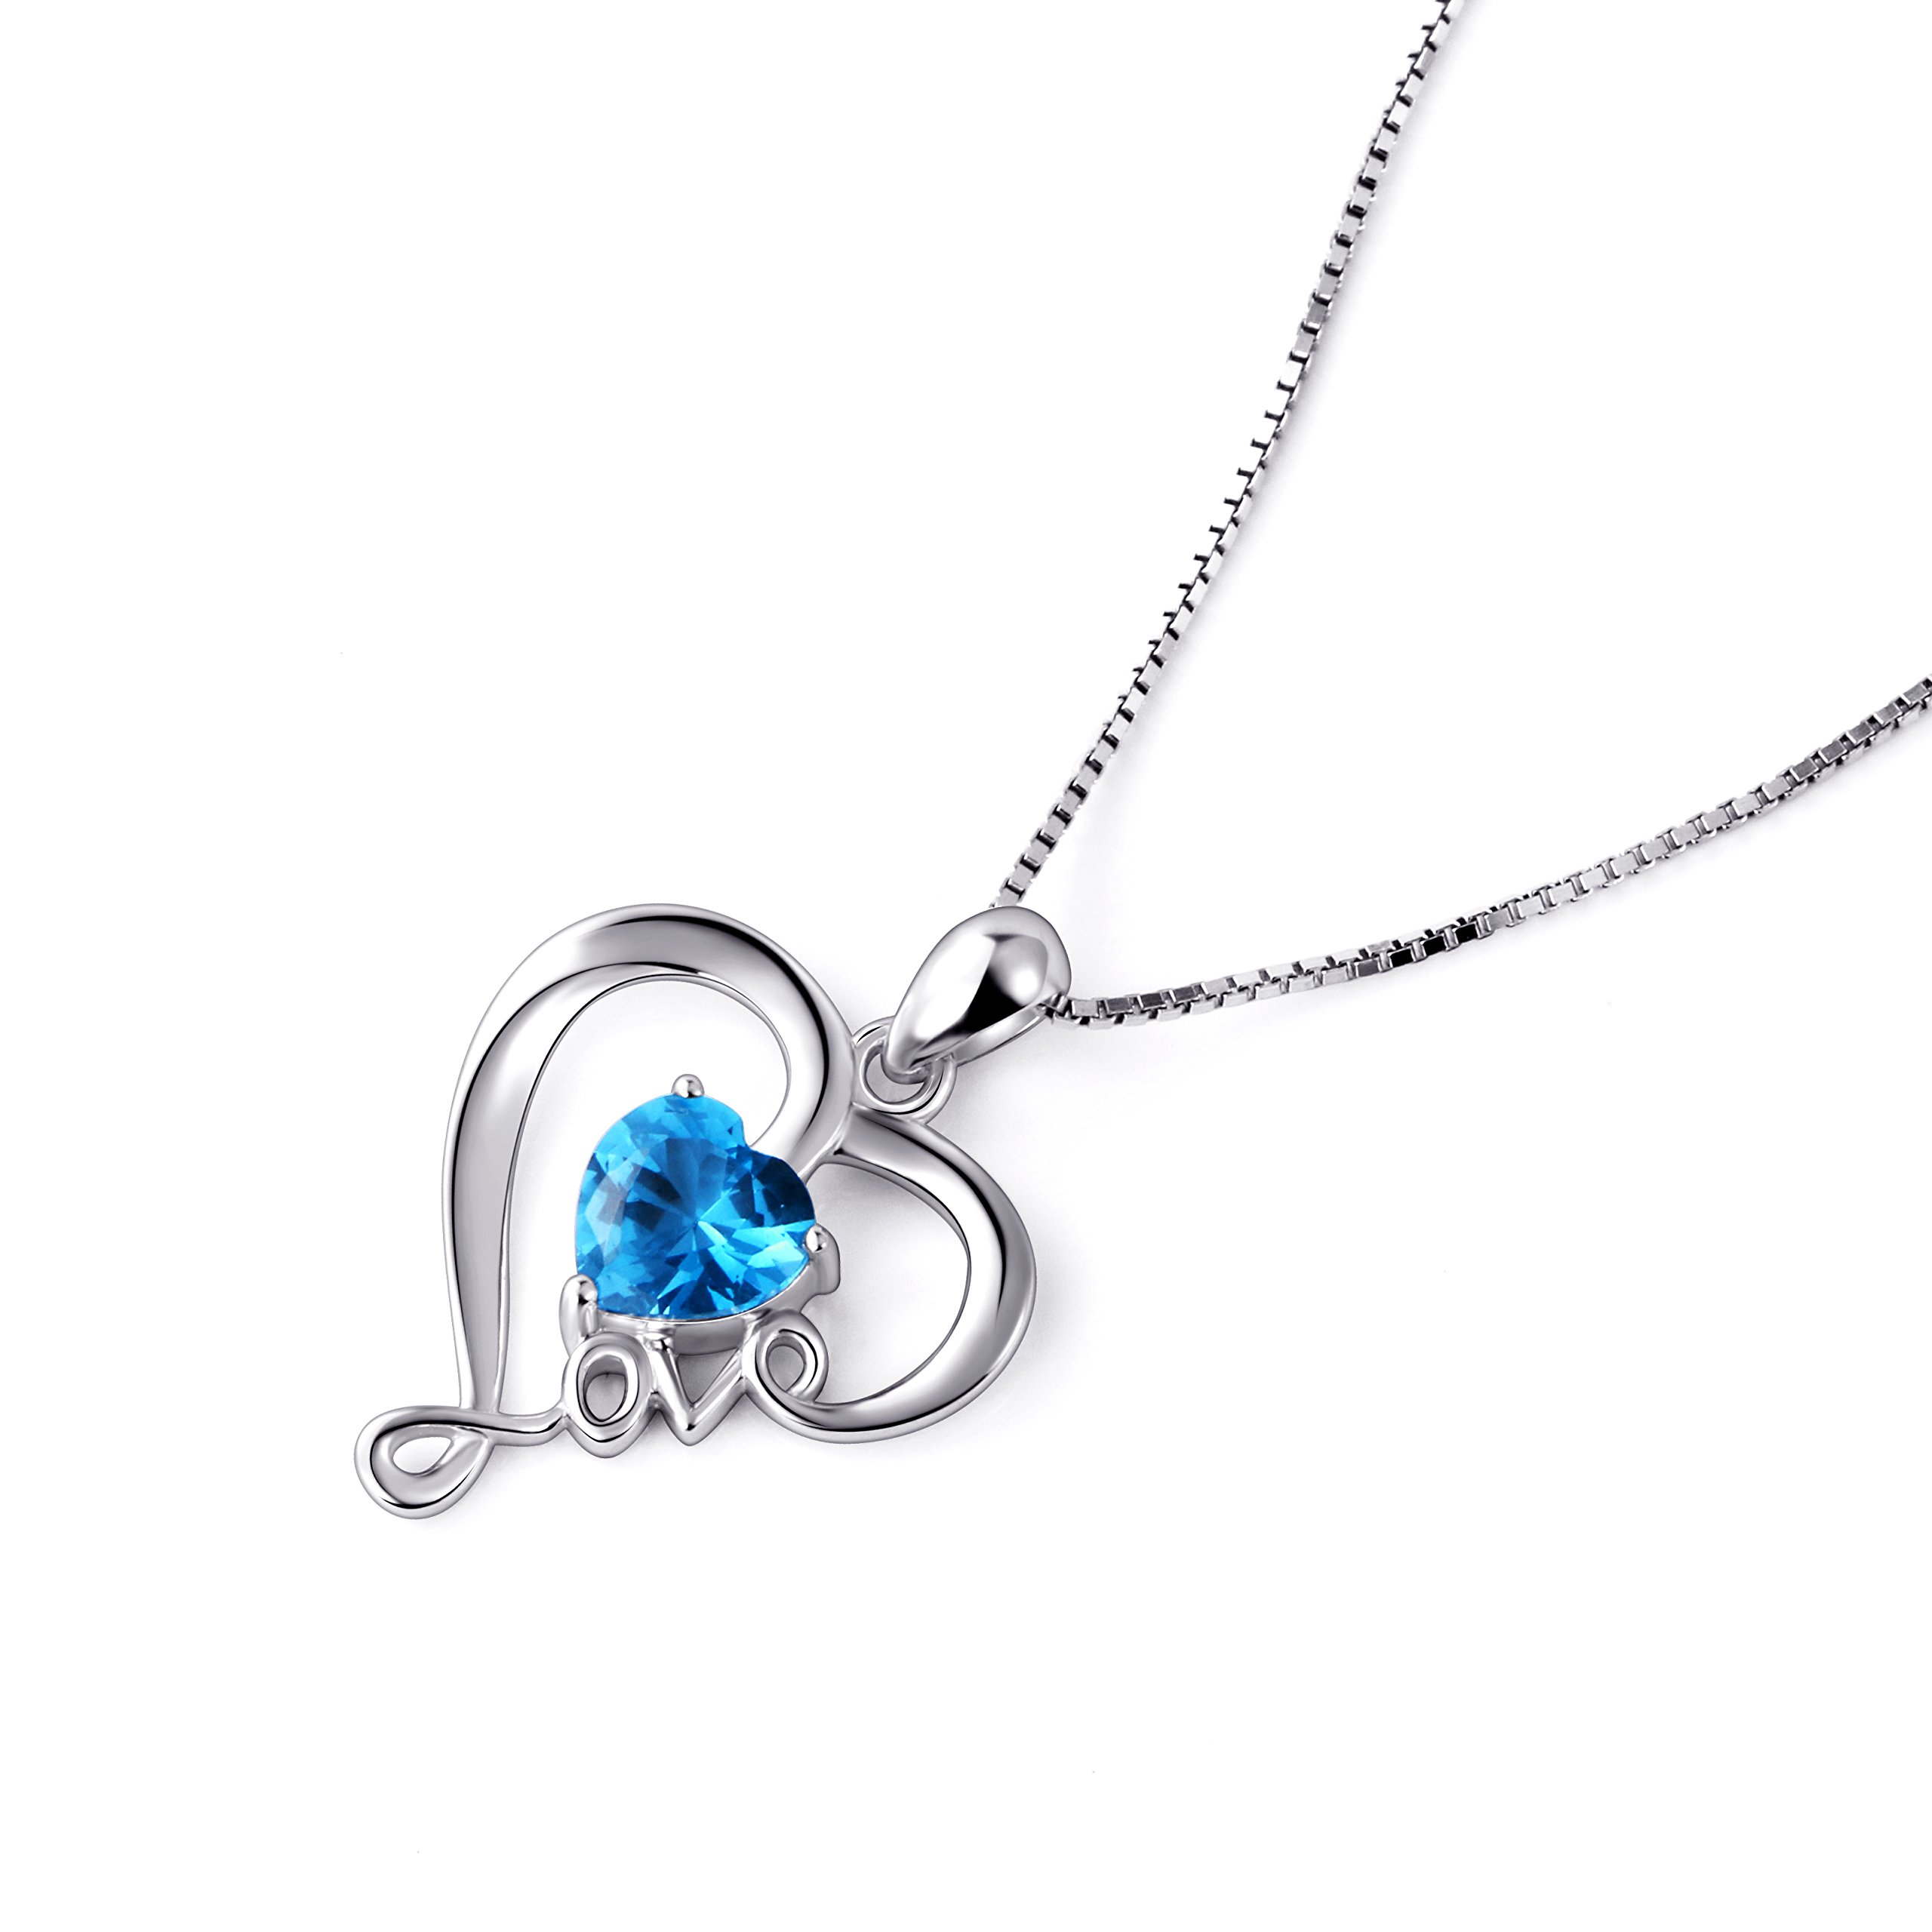 necklace pendant rose infinity inch silver cz tone white fashion and heart sterling finish pin with